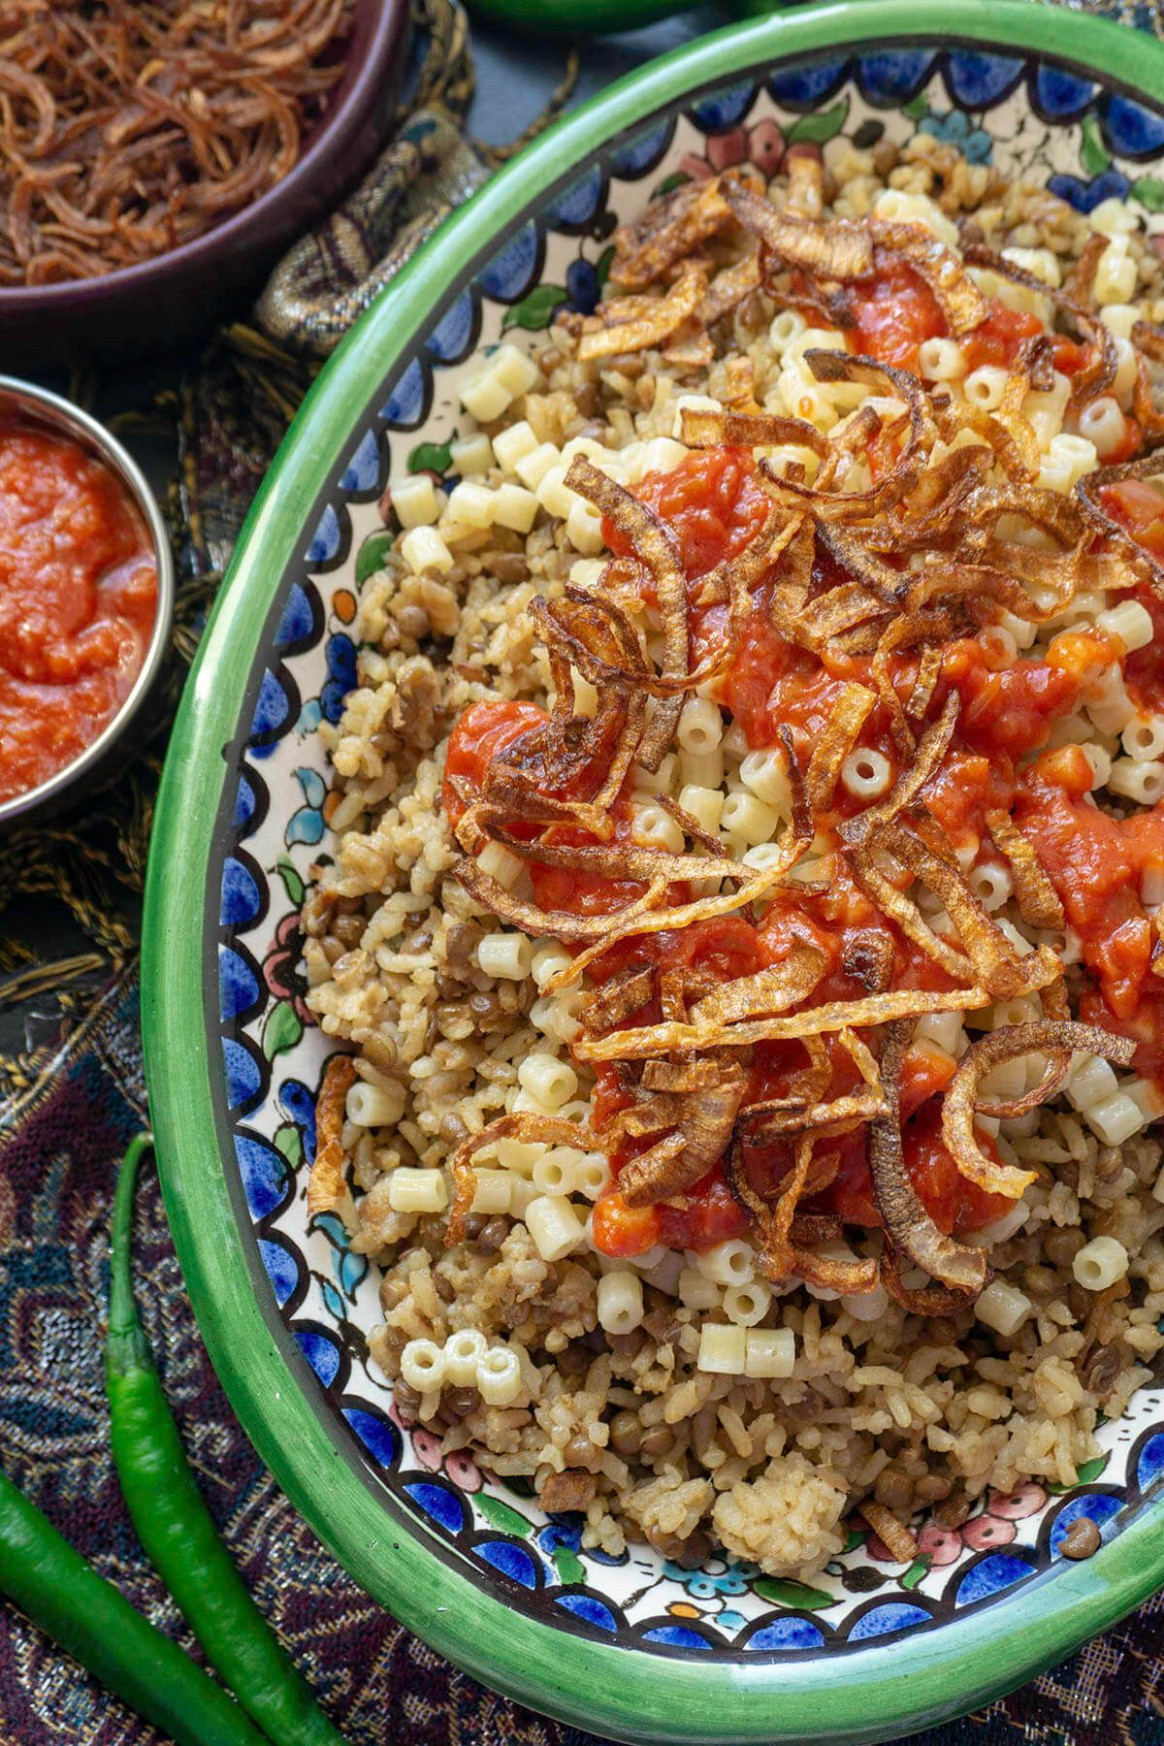 Kushari - Egyptian Rice, Lentils, and Pasta With Spicy Tomato Sauce - egyptian food recipes